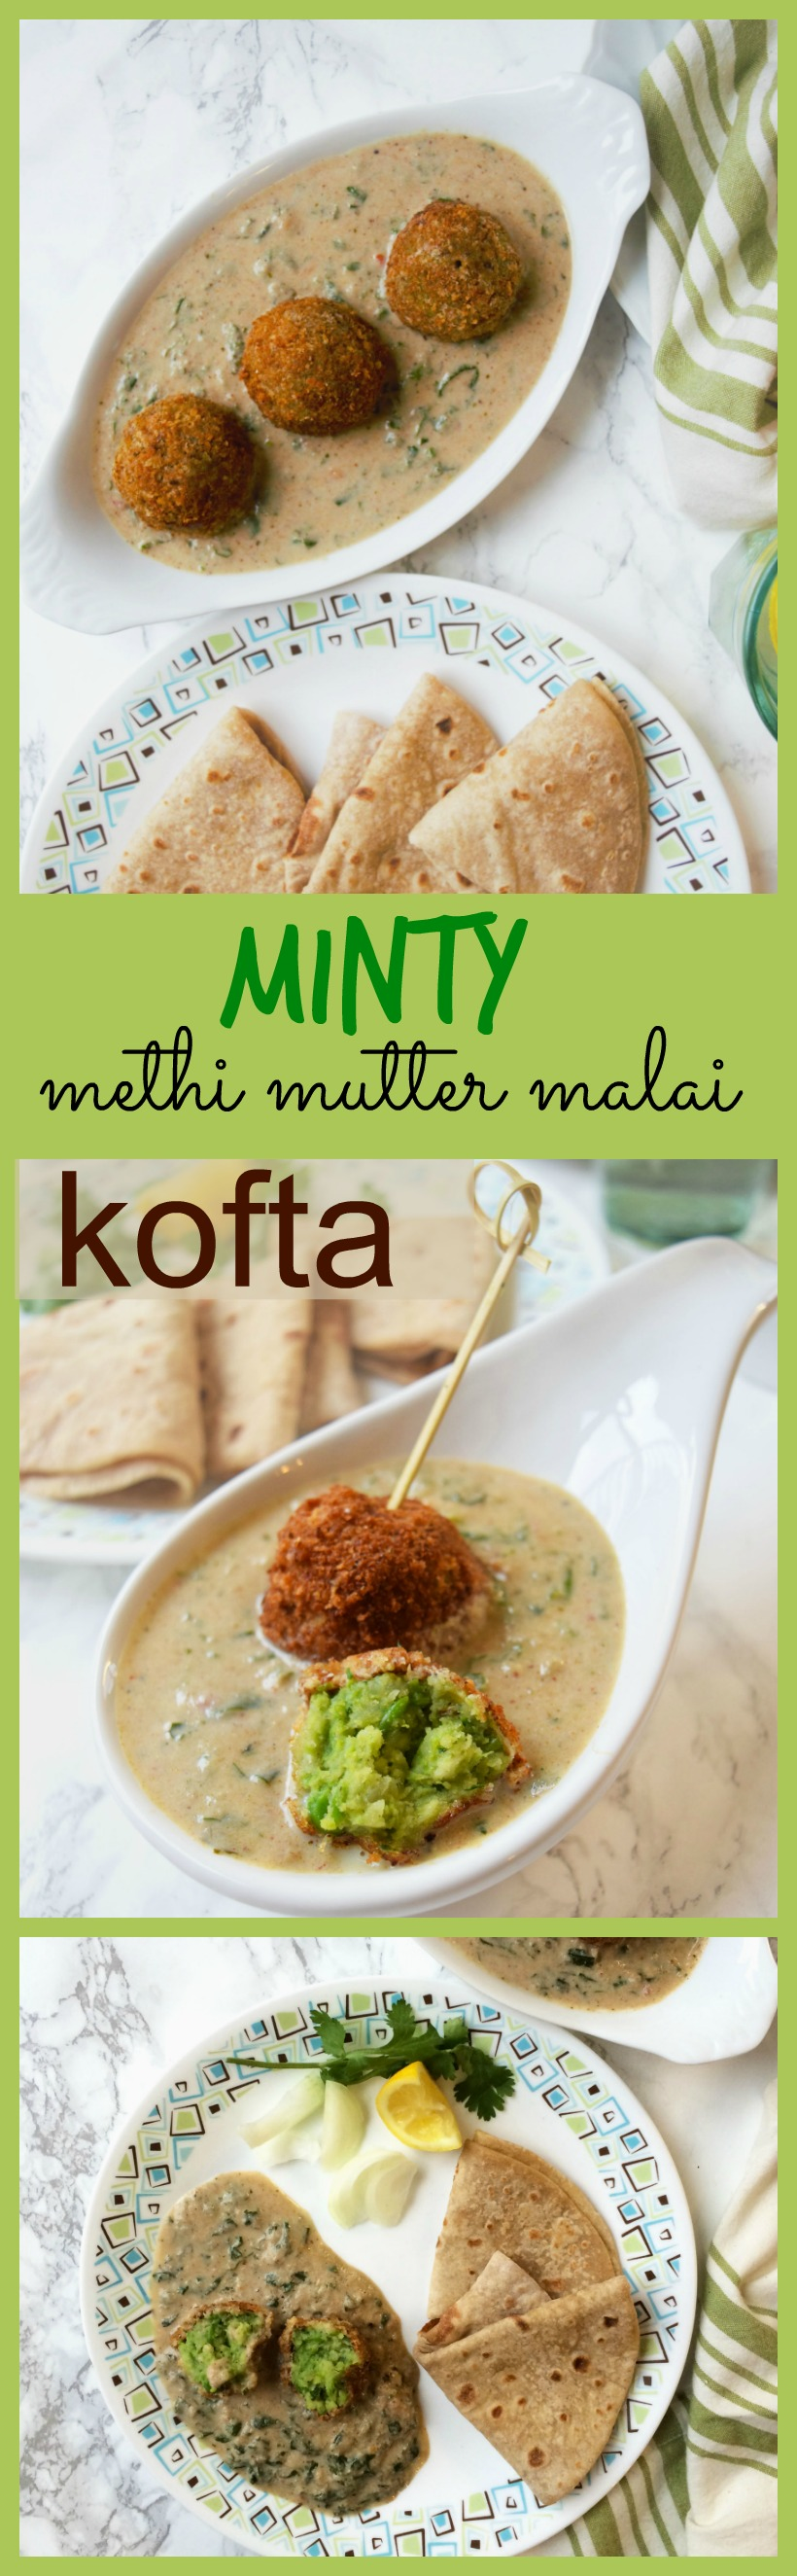 Minty methi mutter malai kofta